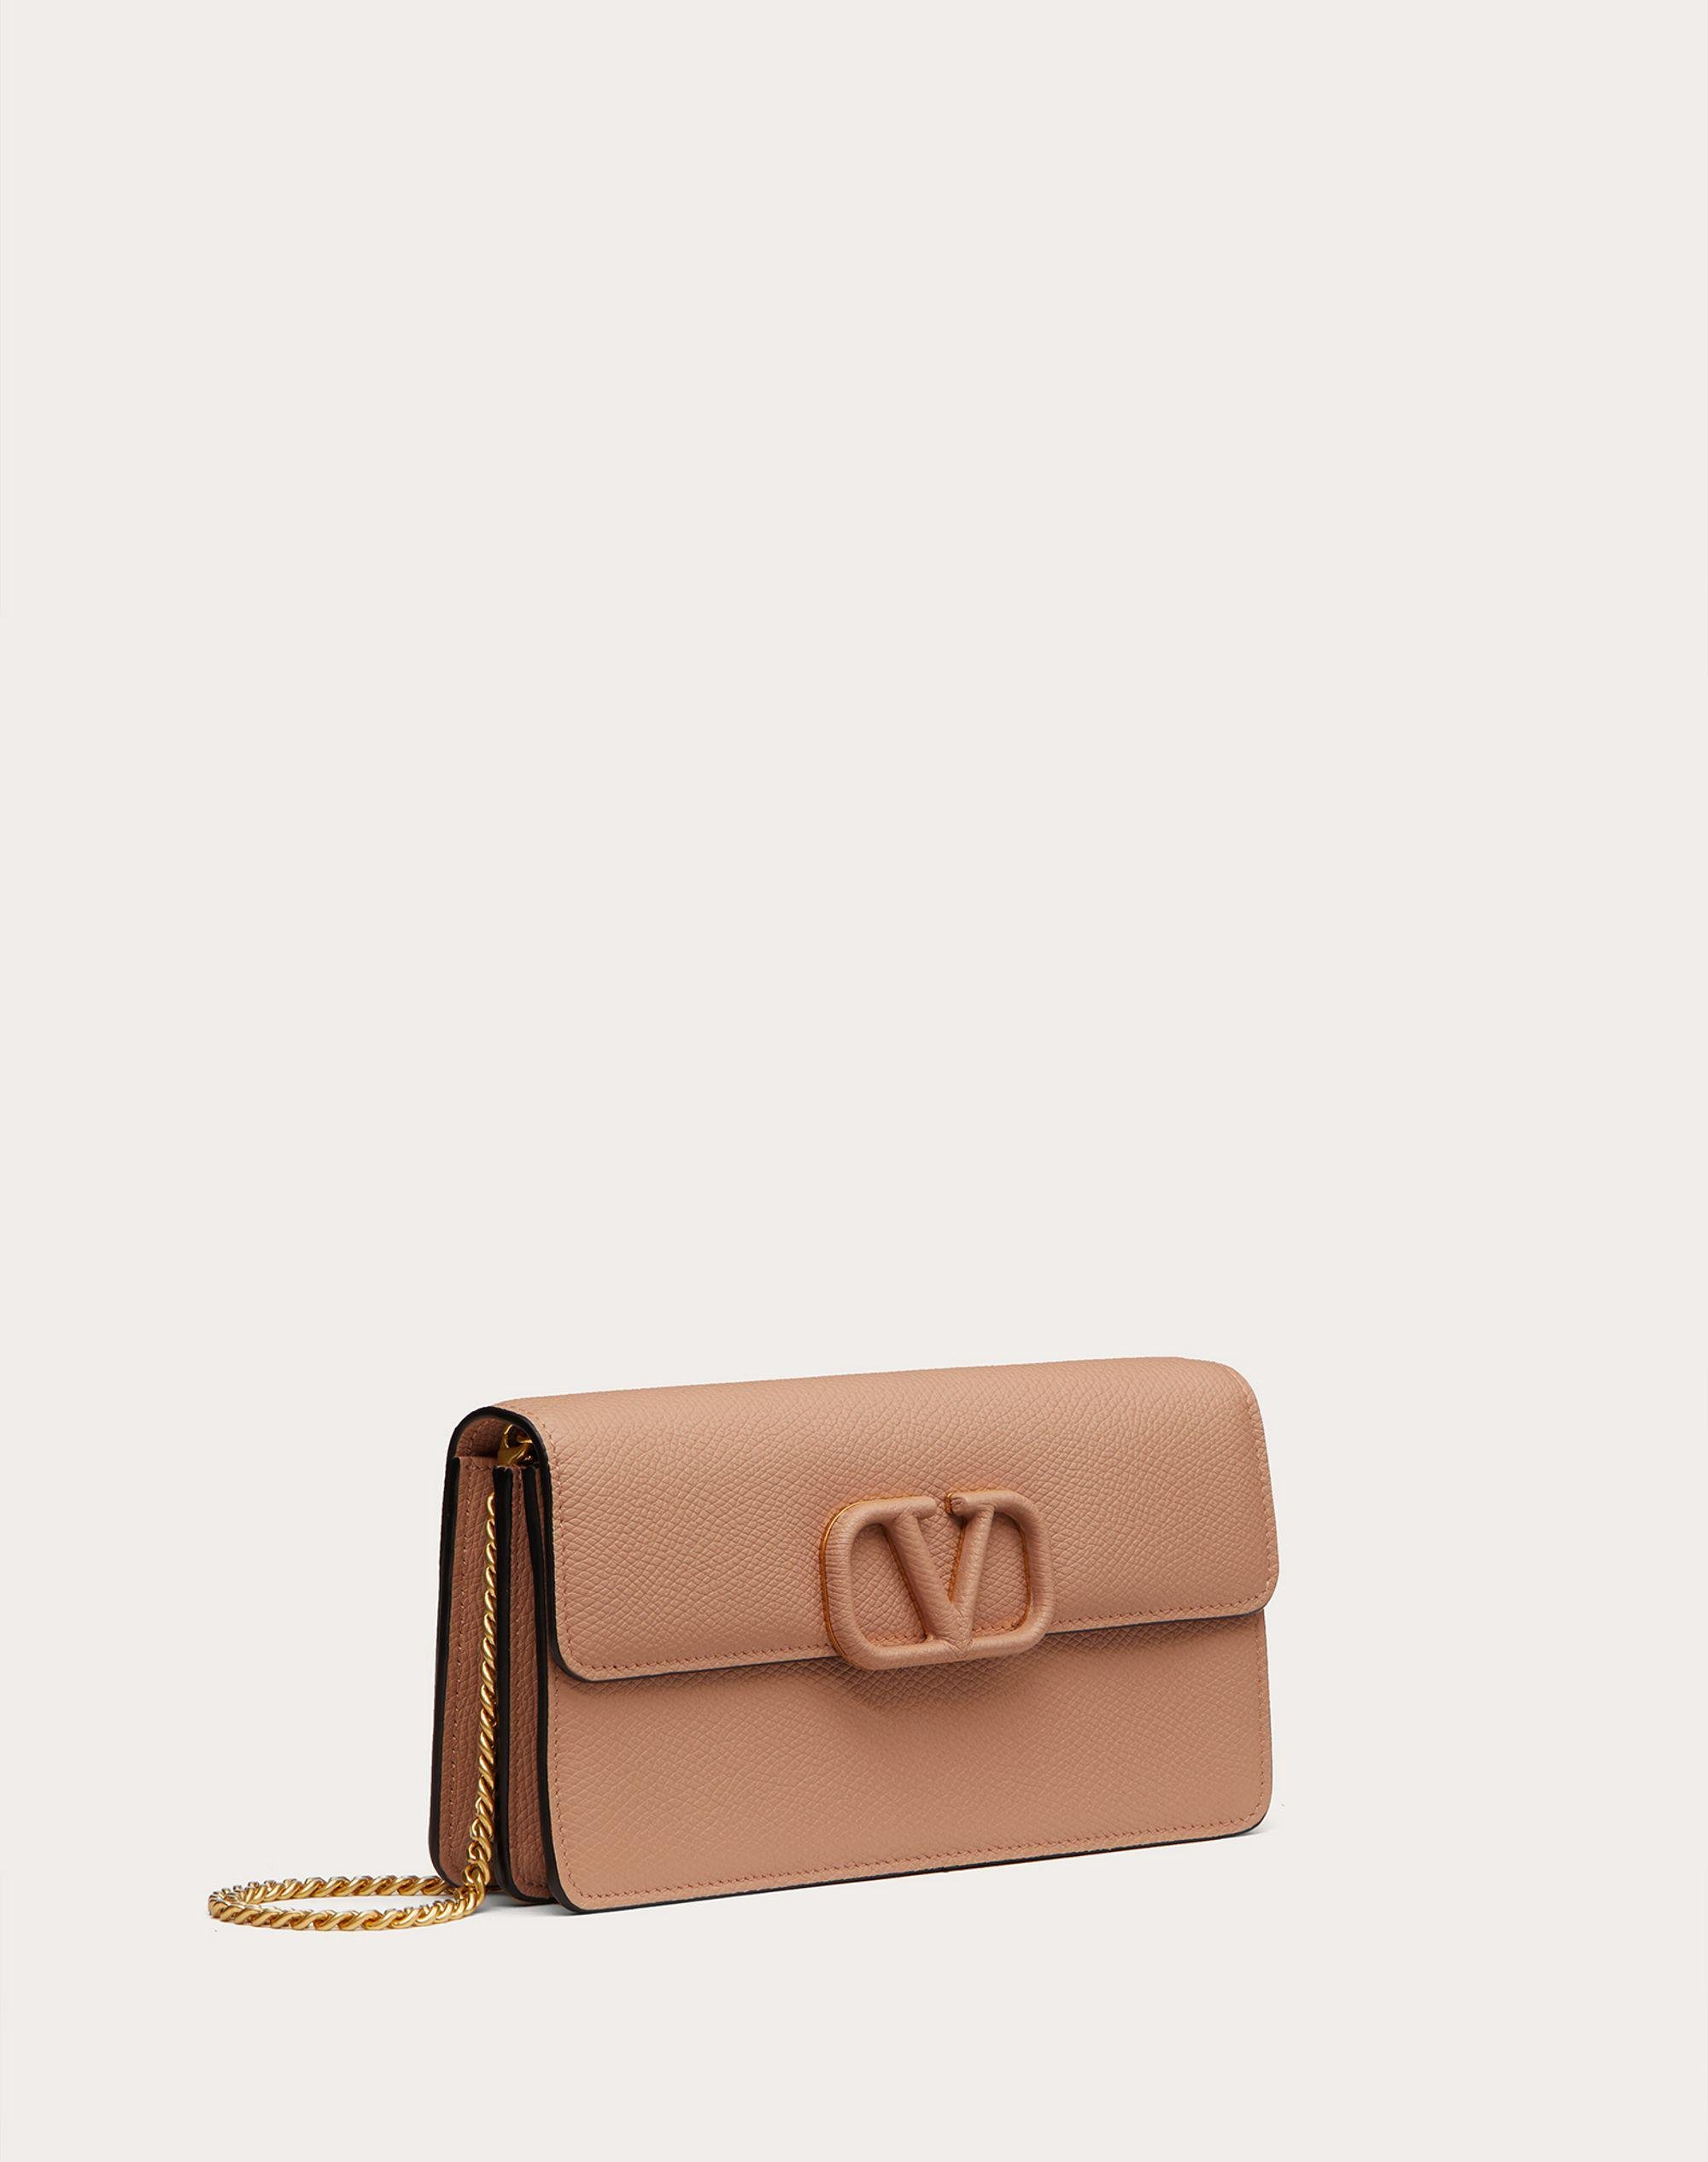 VLOGO SIGNATURE GRAINY CALFSKIN WALLET WITH CHAIN 3